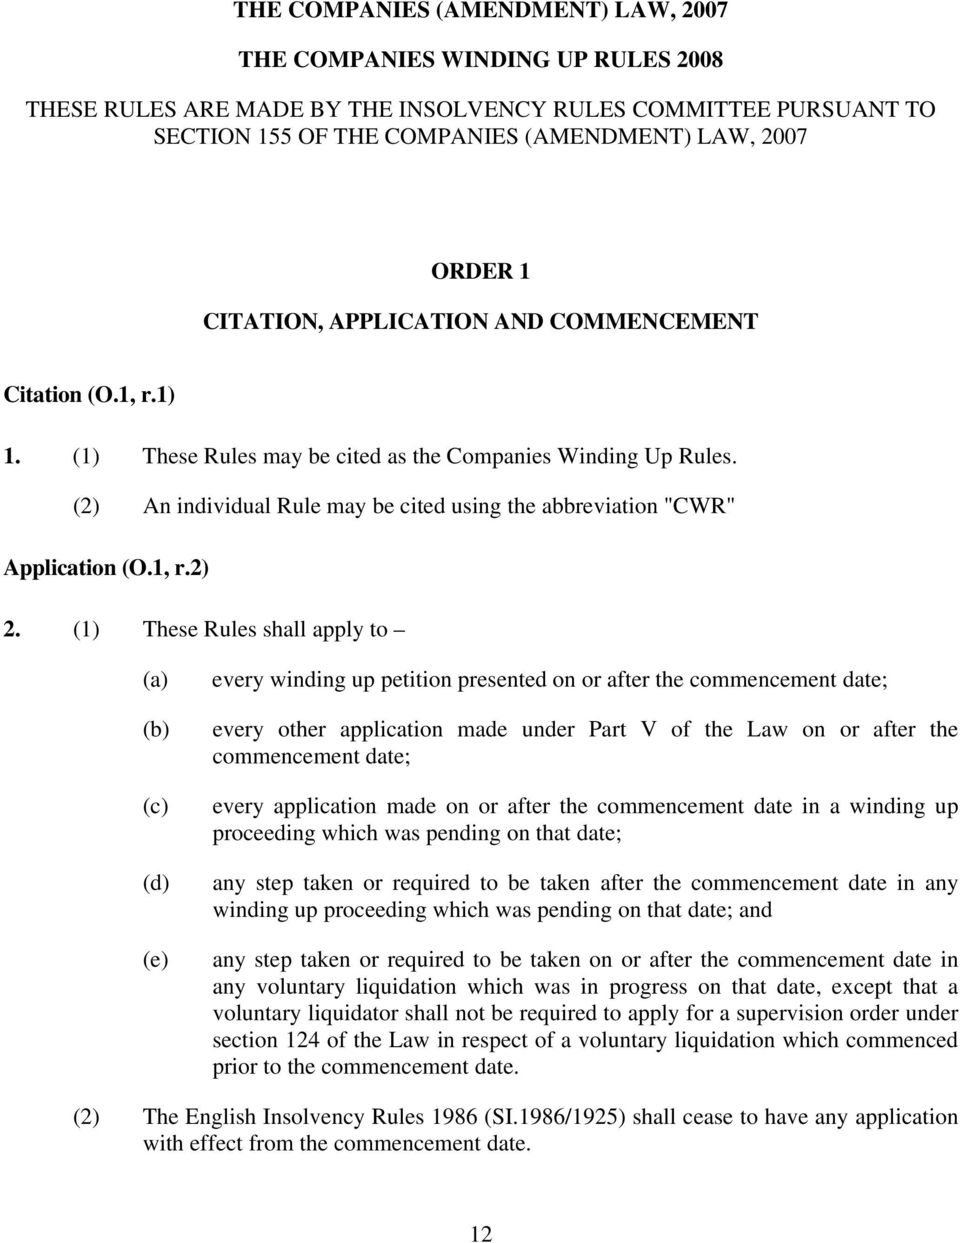 "(2) An individual Rule may be cited using the abbreviation ""CWR"" Application (O.1, r.2) 2."